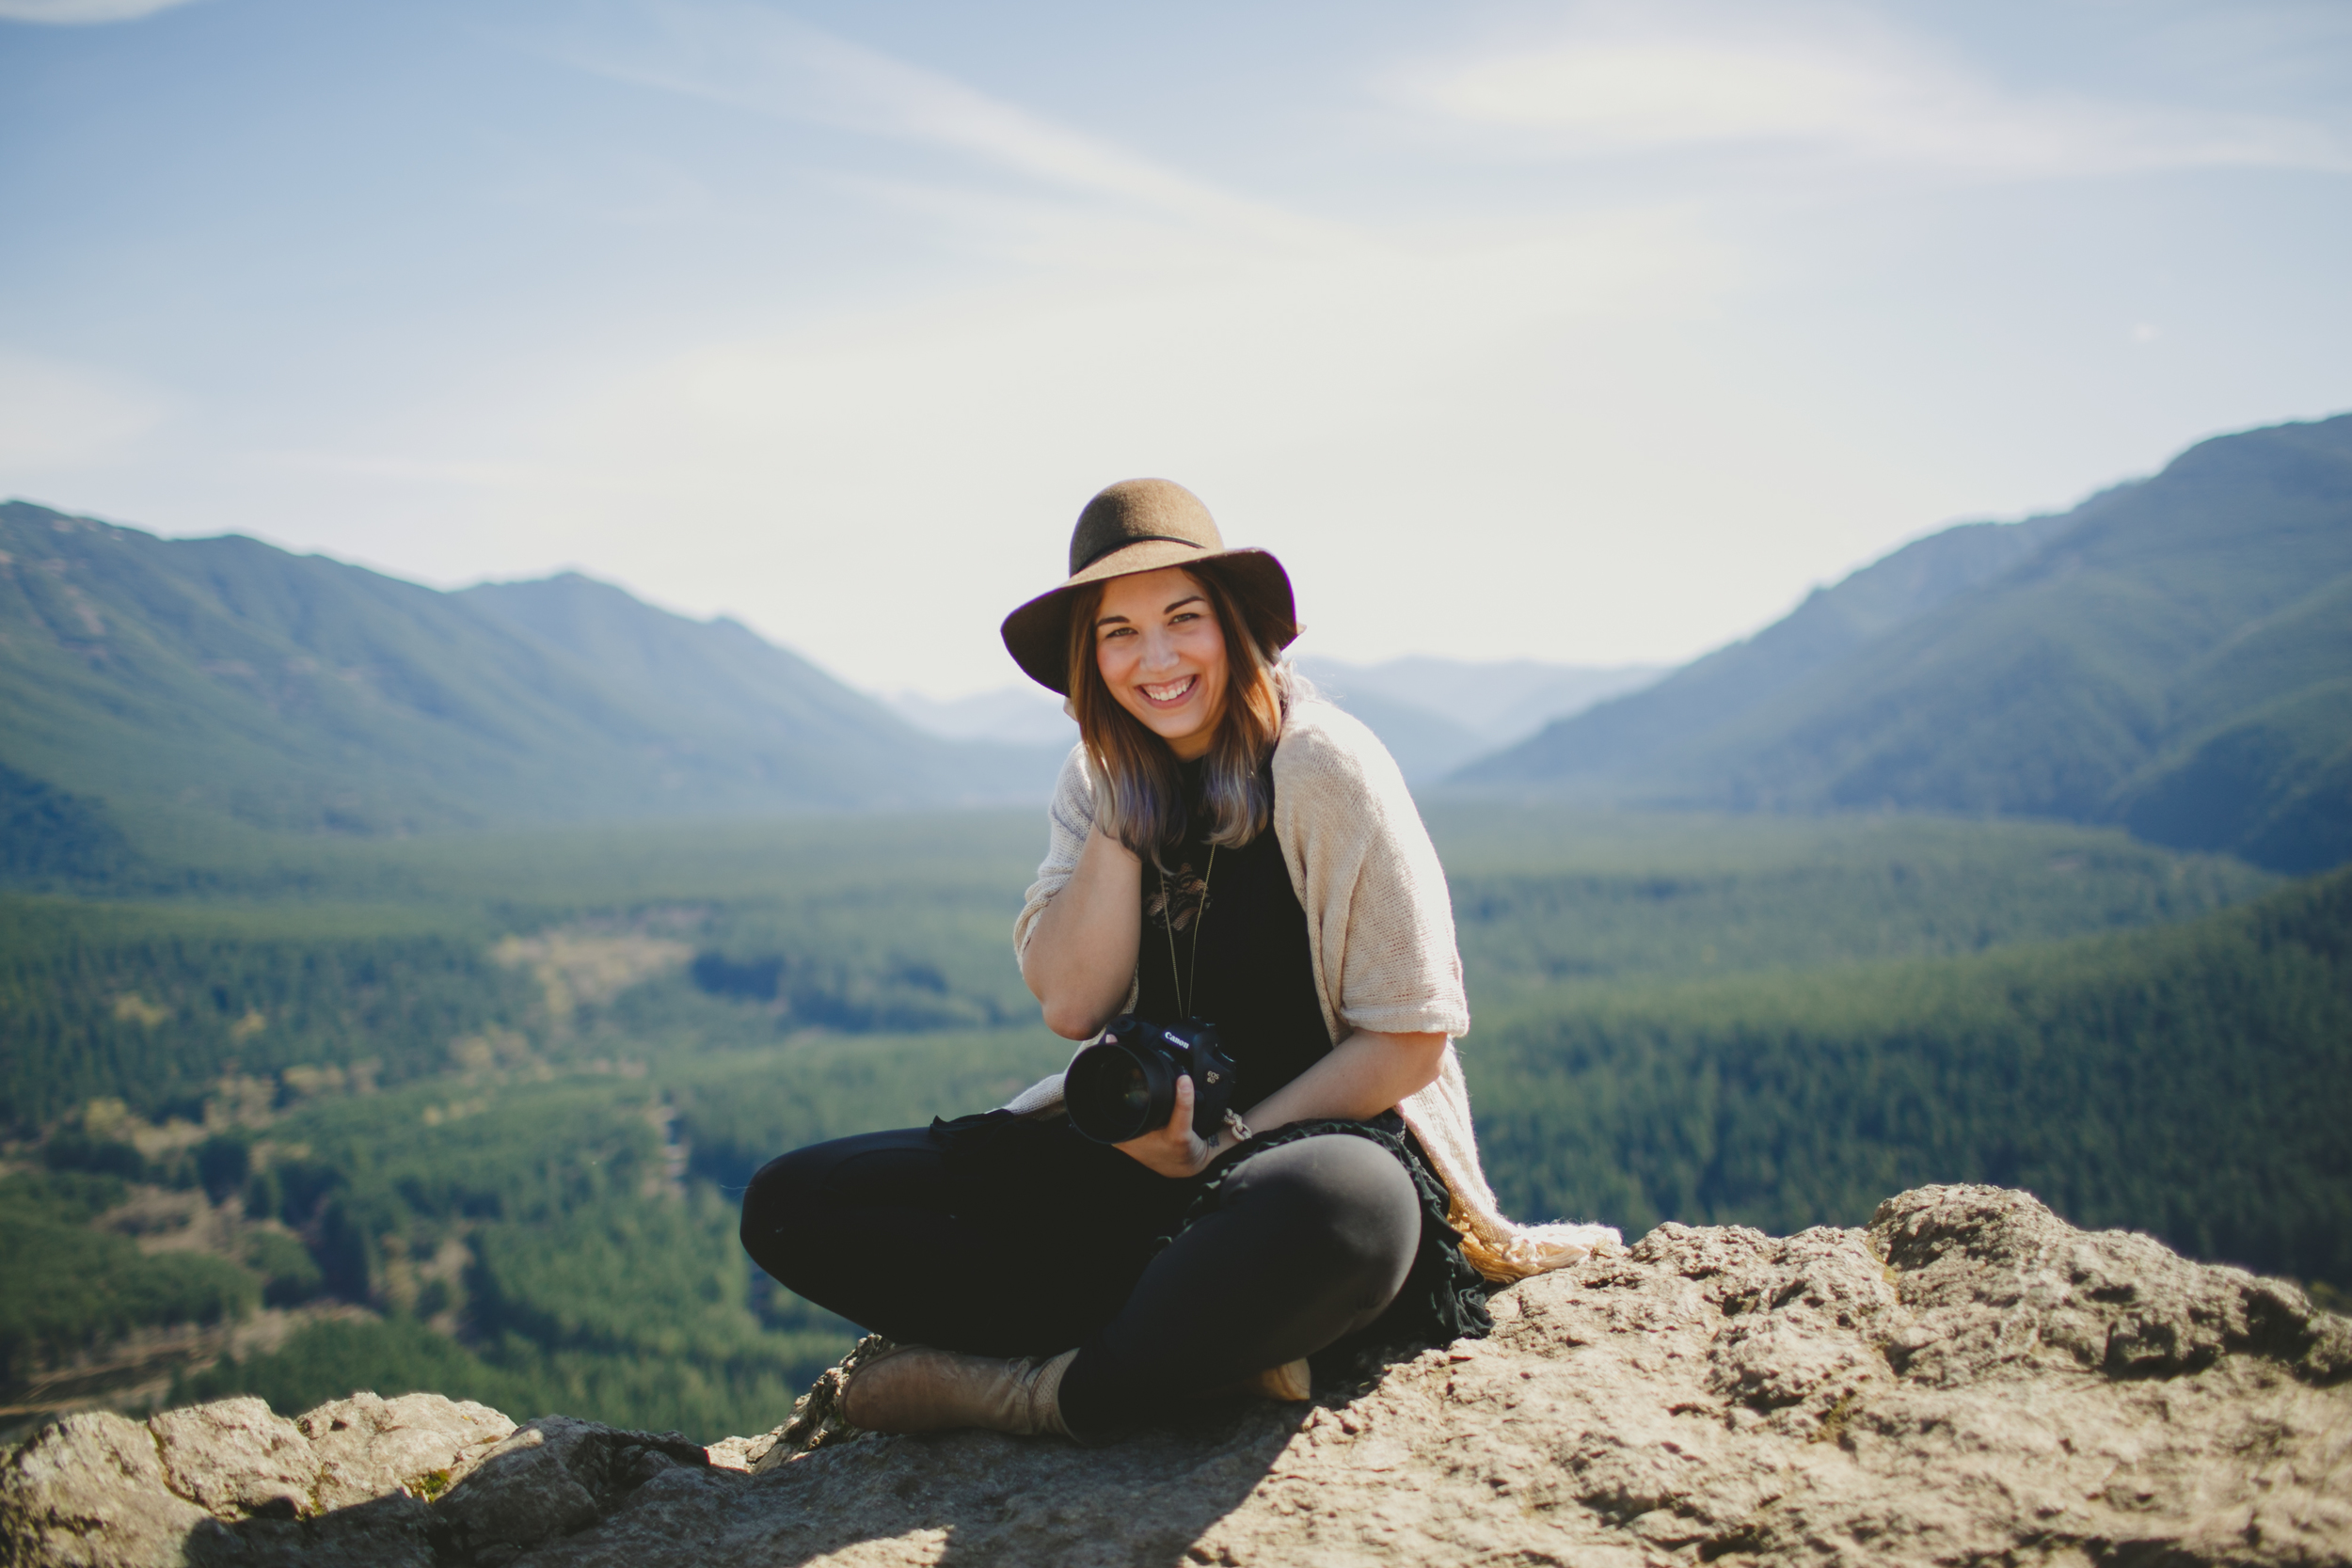 Rachel Barkman (pictured above) is a wedding and travel photographer based in Vancouver, BC who seeks to build community and glorify Jesus through her images and adventures.